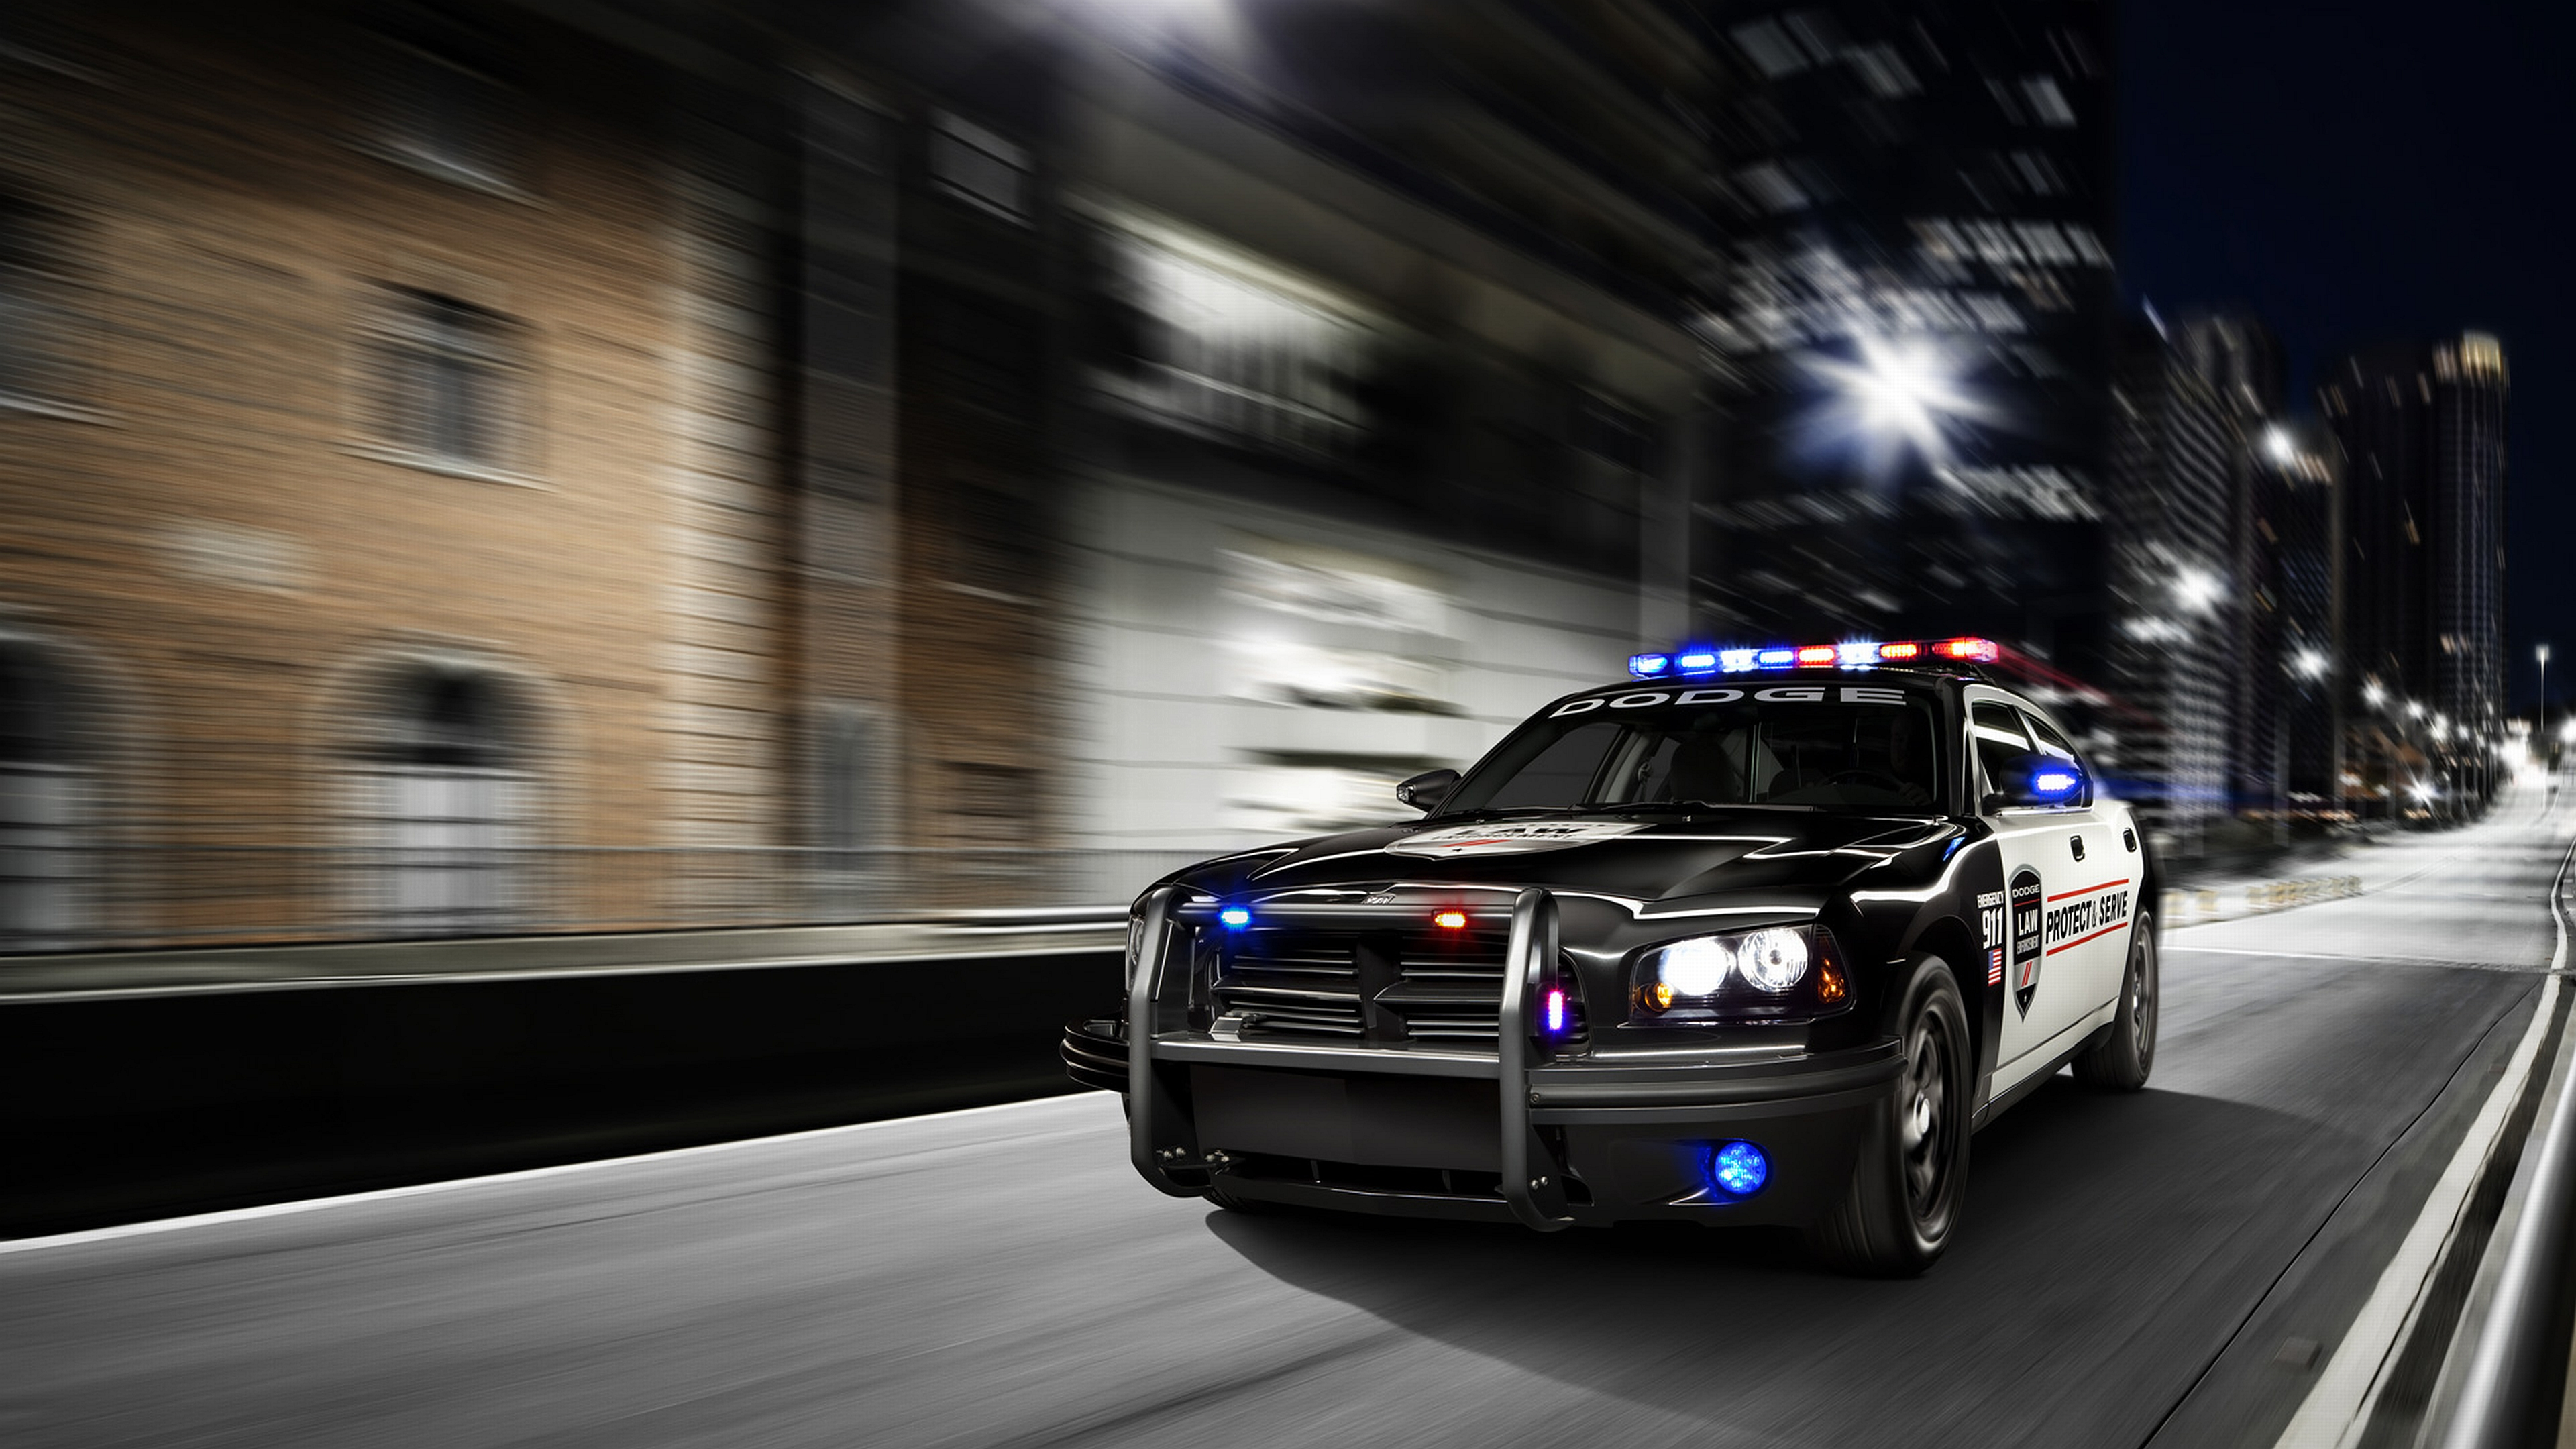 Wallpapers Police